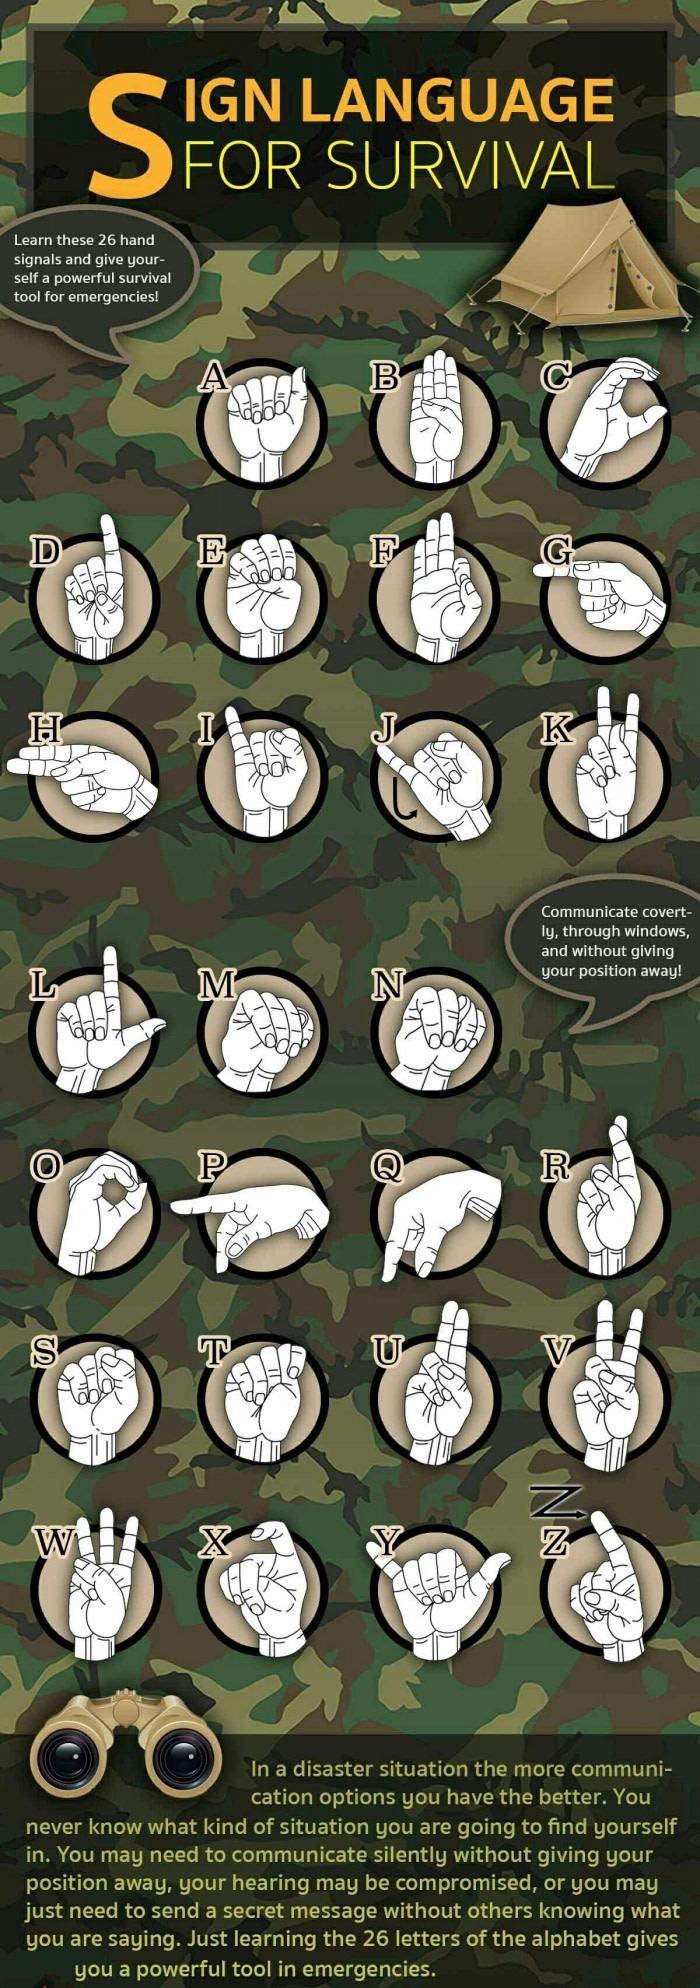 Sign language for survival